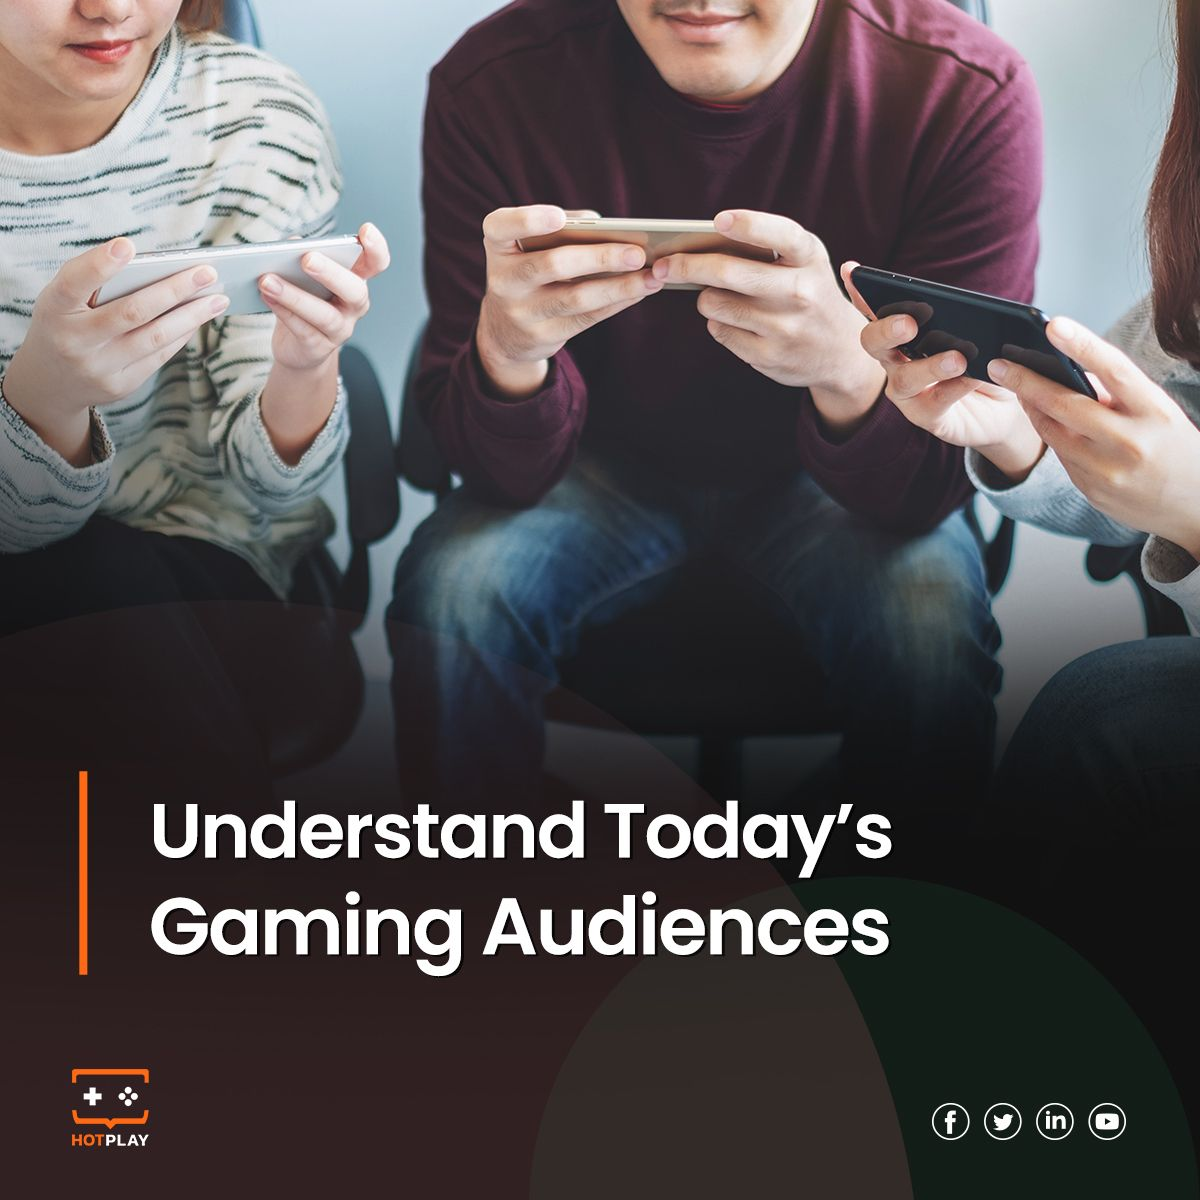 20211004_Understand today's gaming audiences